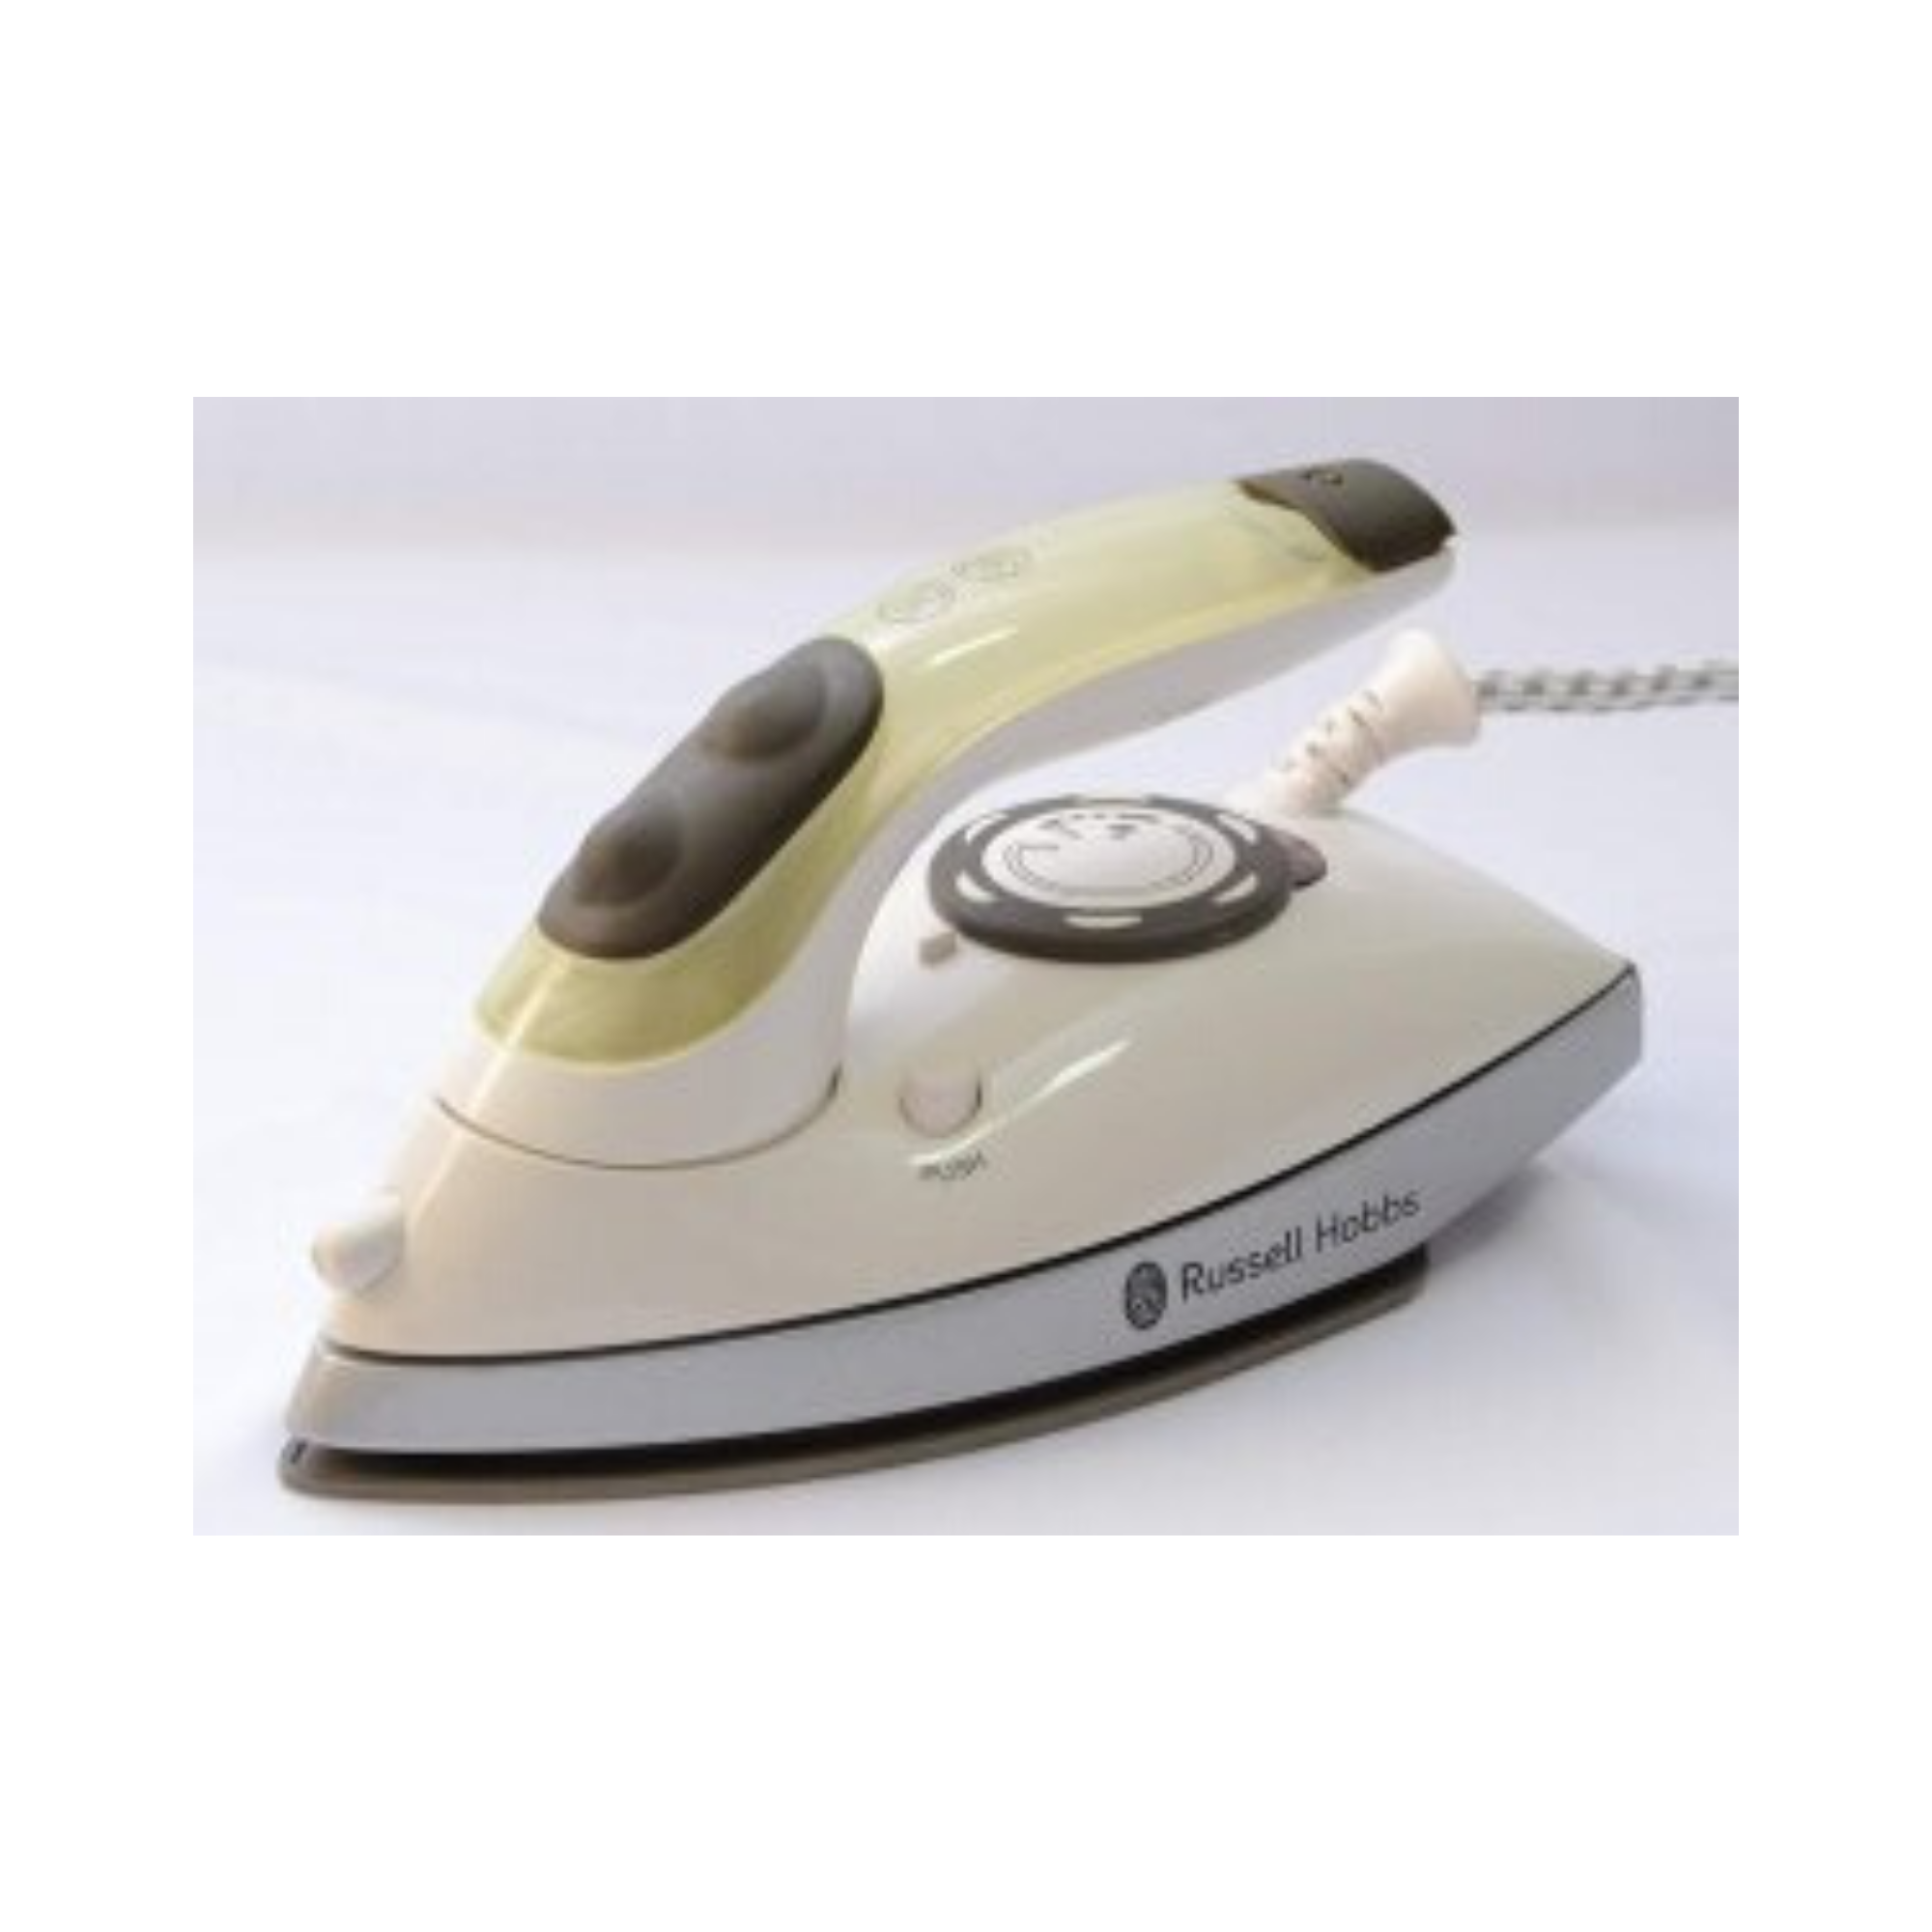 Russell Hobbs RTI133 1200-Watt Travel Iron (Multicolor)